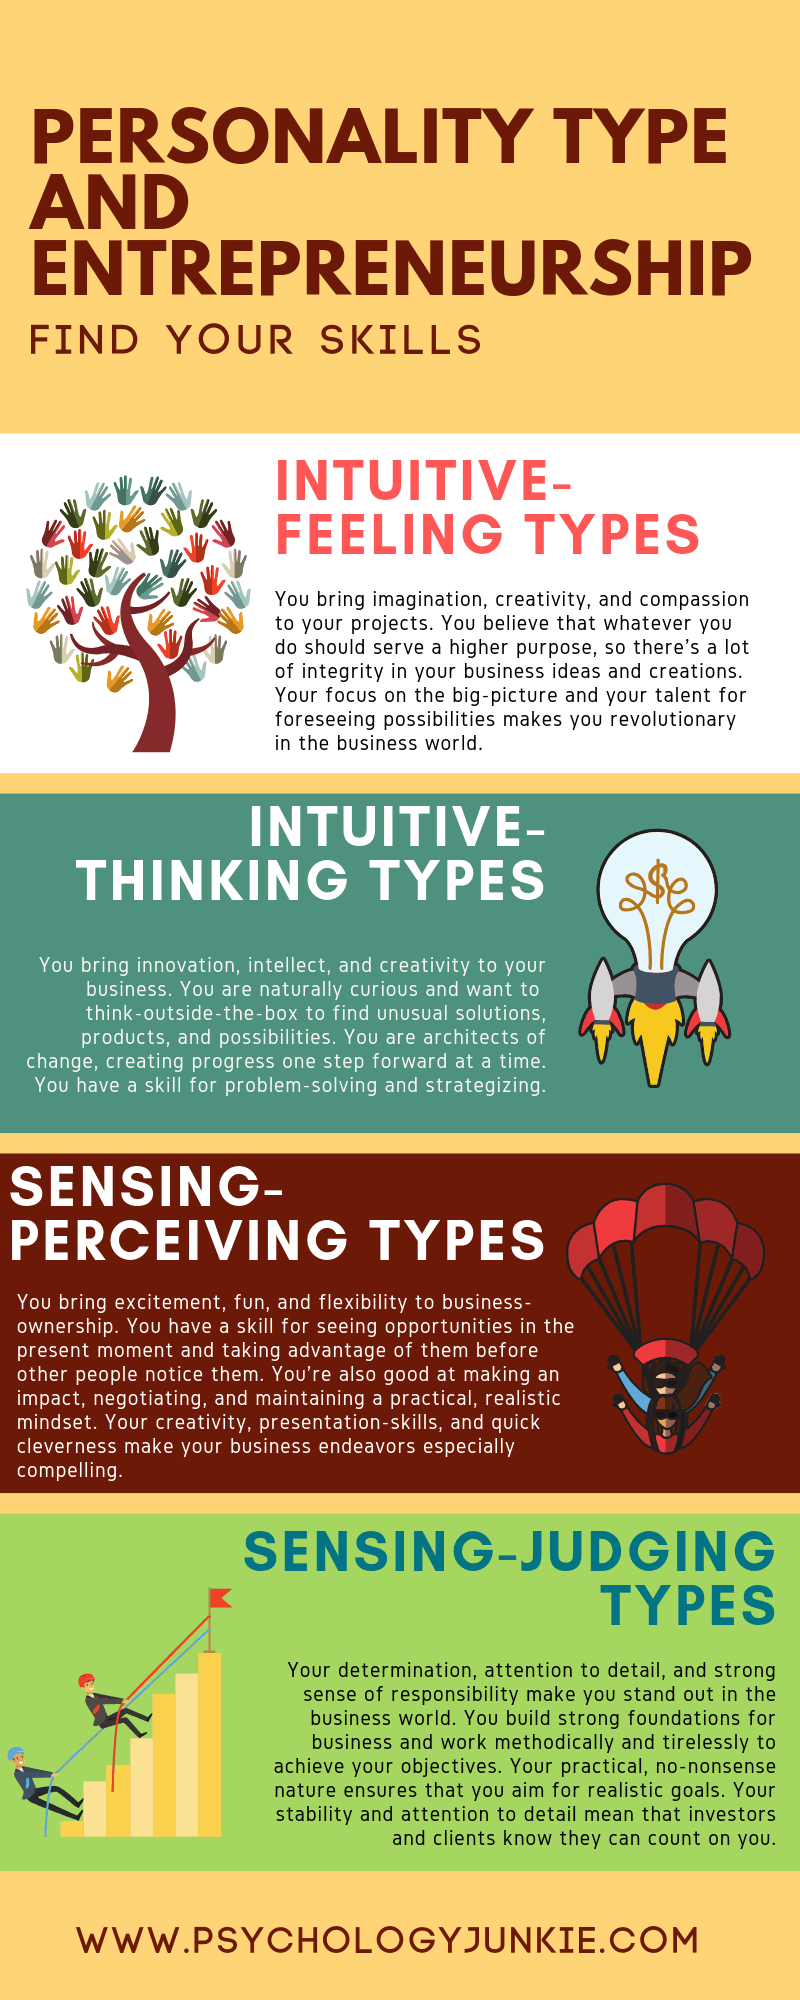 Get an in-depth look at why you should be an entrepreneur, based on your #personality type. #MBTI #INTJ #INFJ #INTP #INFP